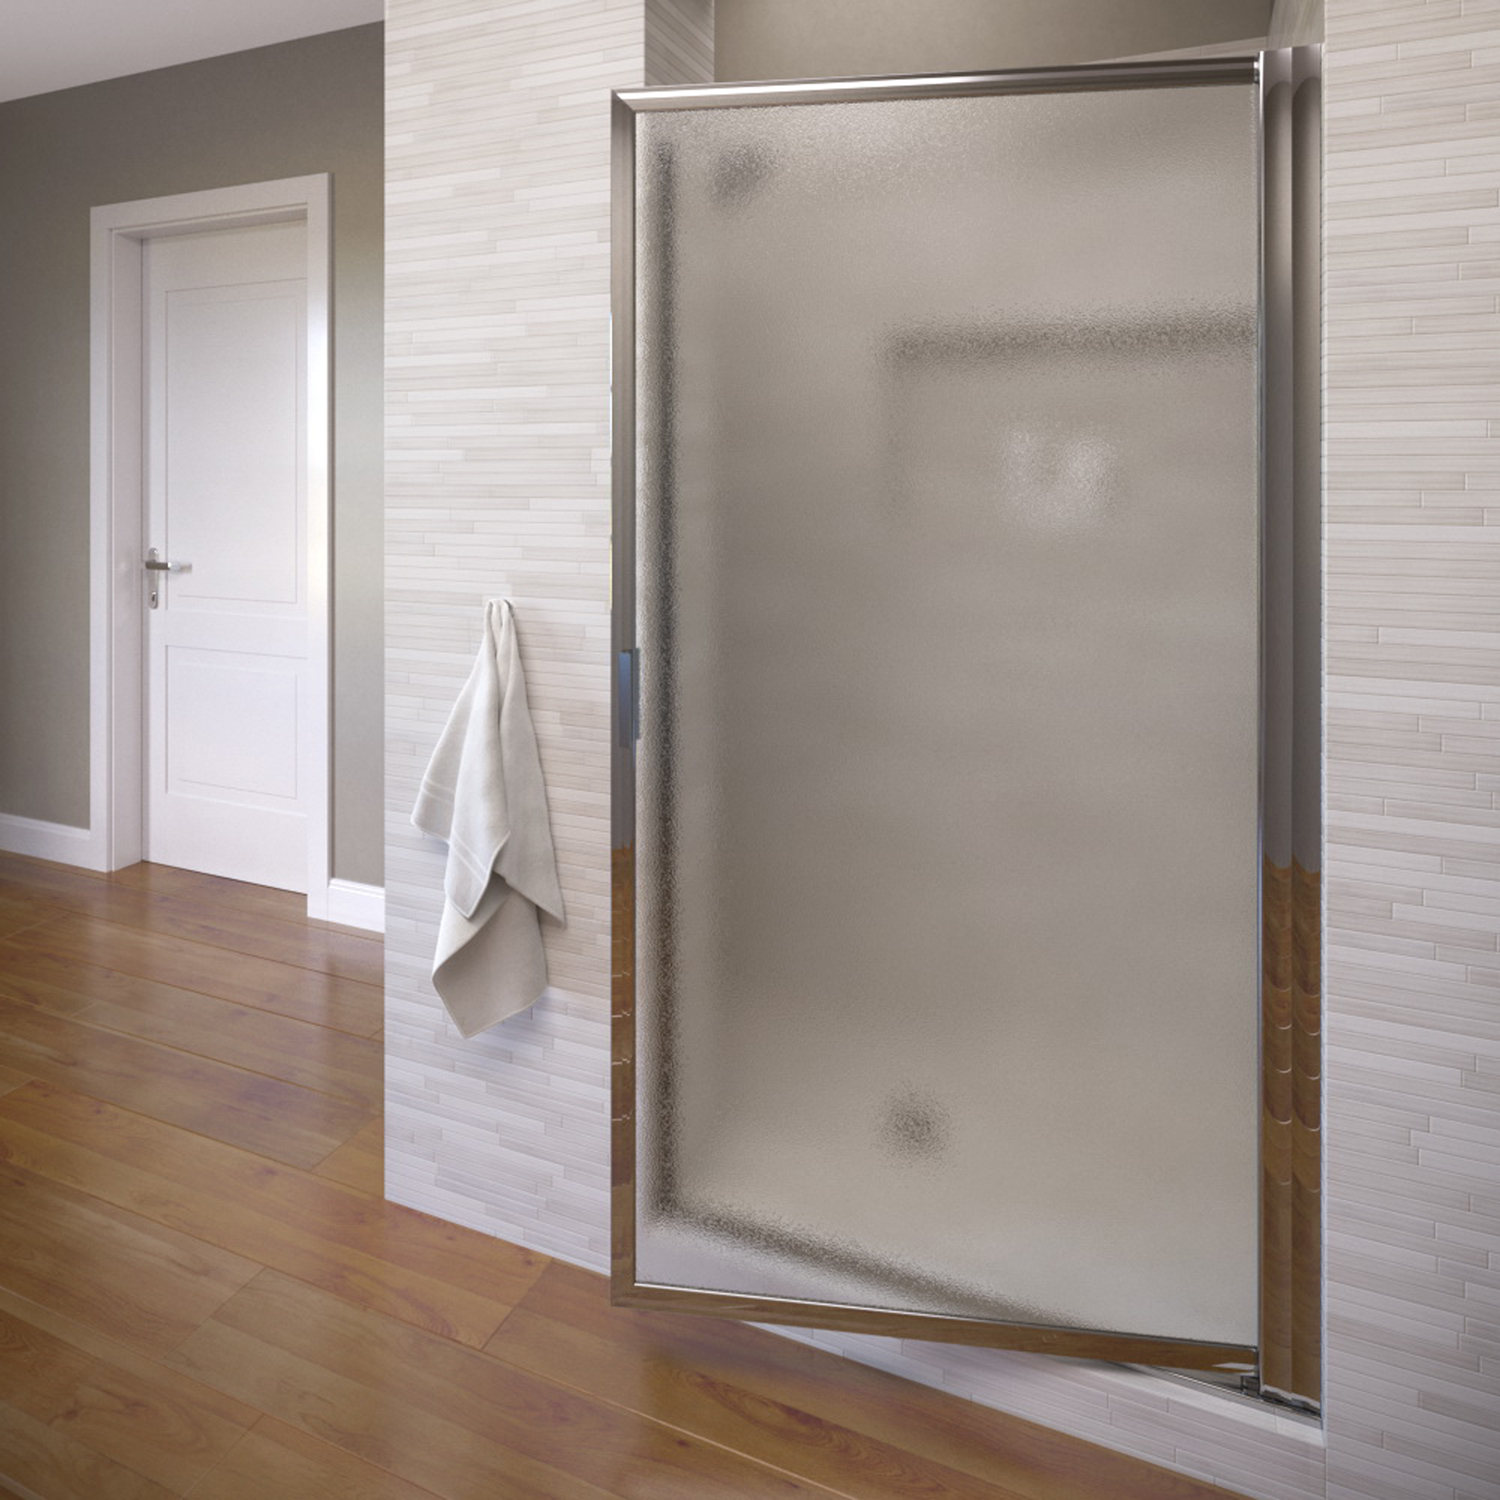 "Basco 100-2 24"" Deluxe Pivot Swing Door with Obscure Glass - Silver"